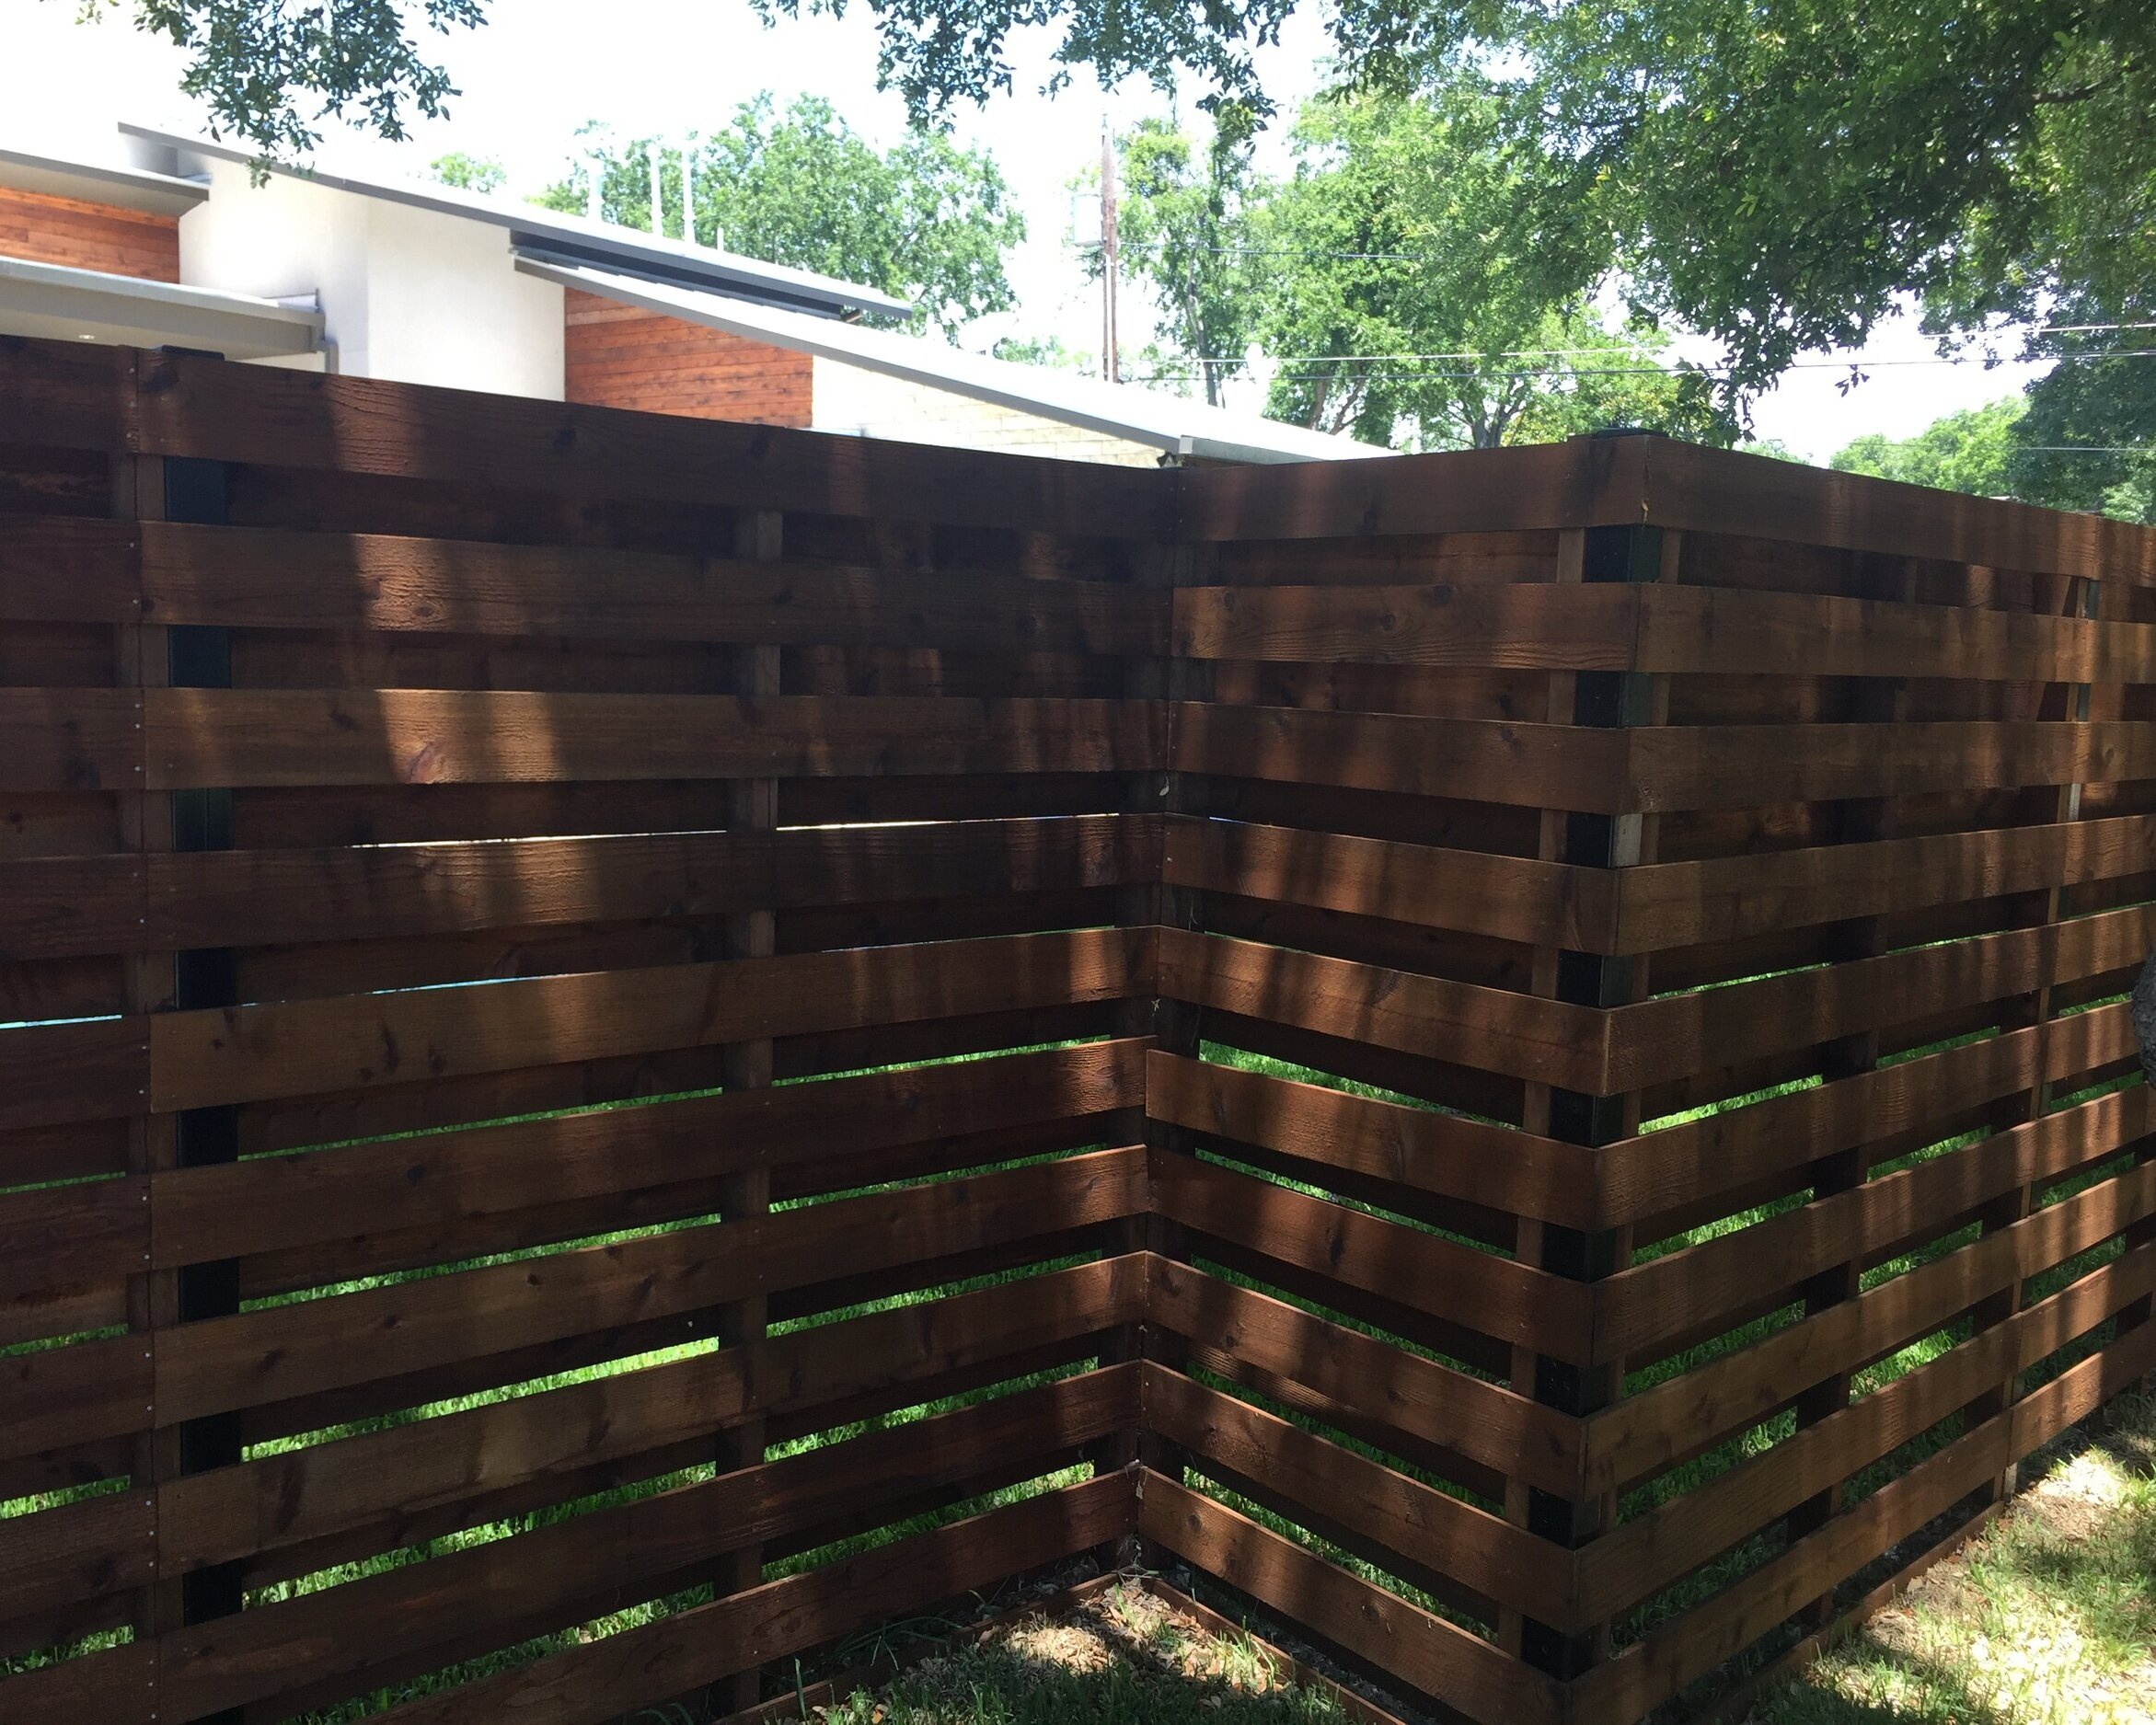 Wood Fence  - The natural beauty of wood done right cannot be rivaled. Global Fence uses only top grade cedar and we hand dip stain our wood to offer beauty and durability that will last for many years